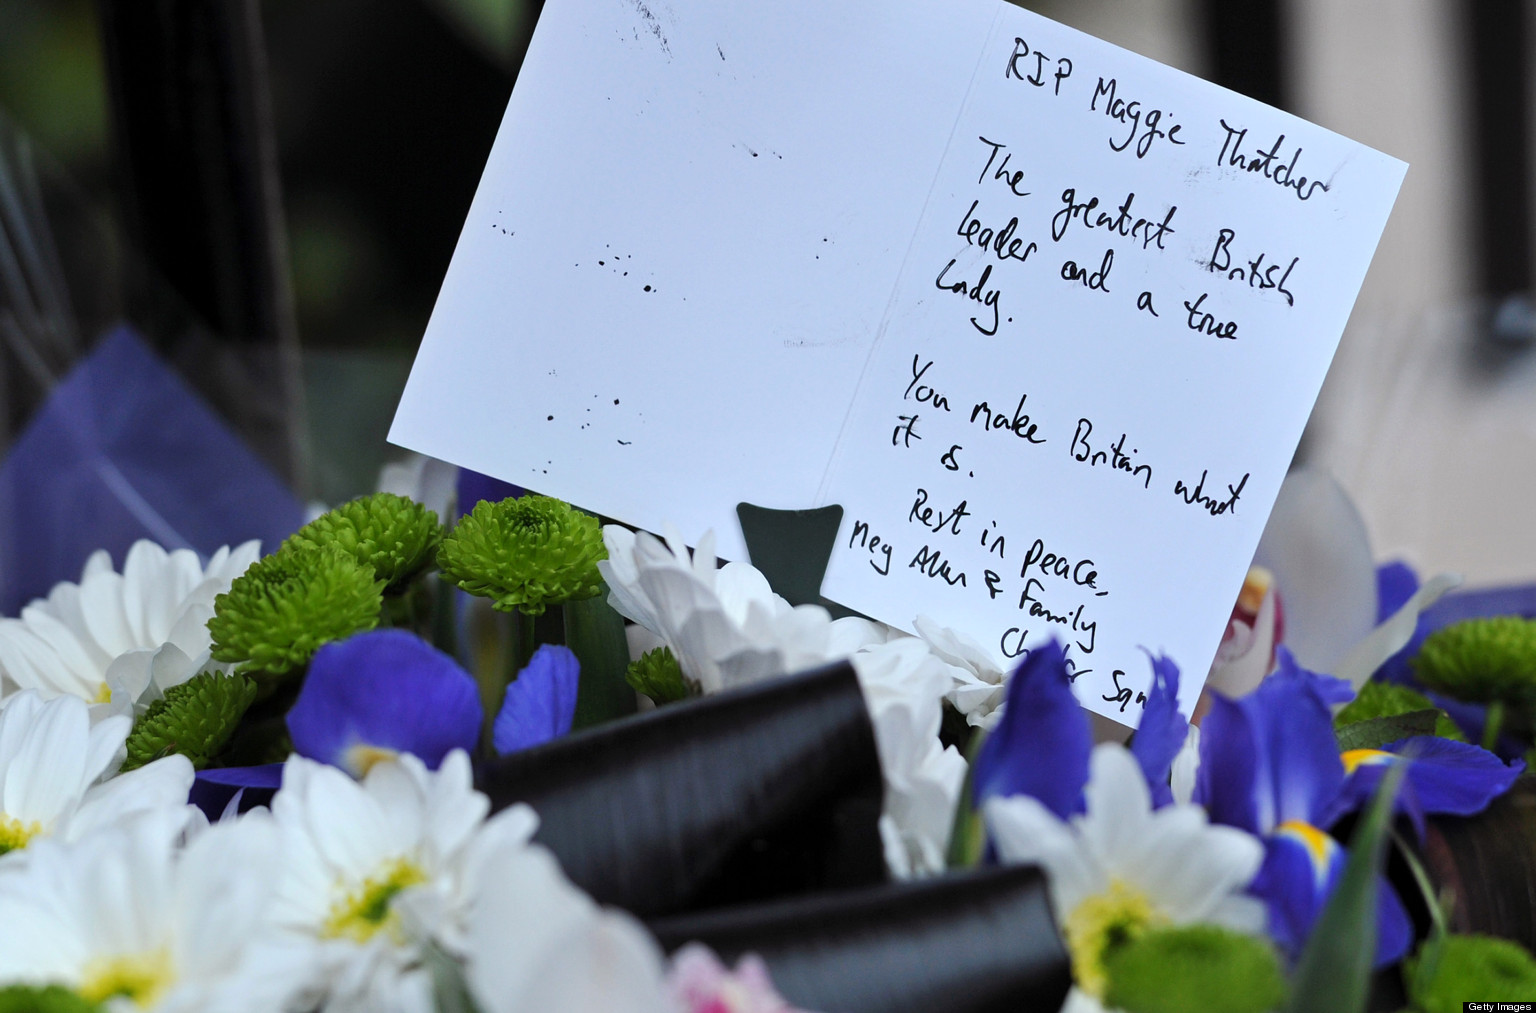 Margaret Thatcher Dead Flowers Left Outside West London Home